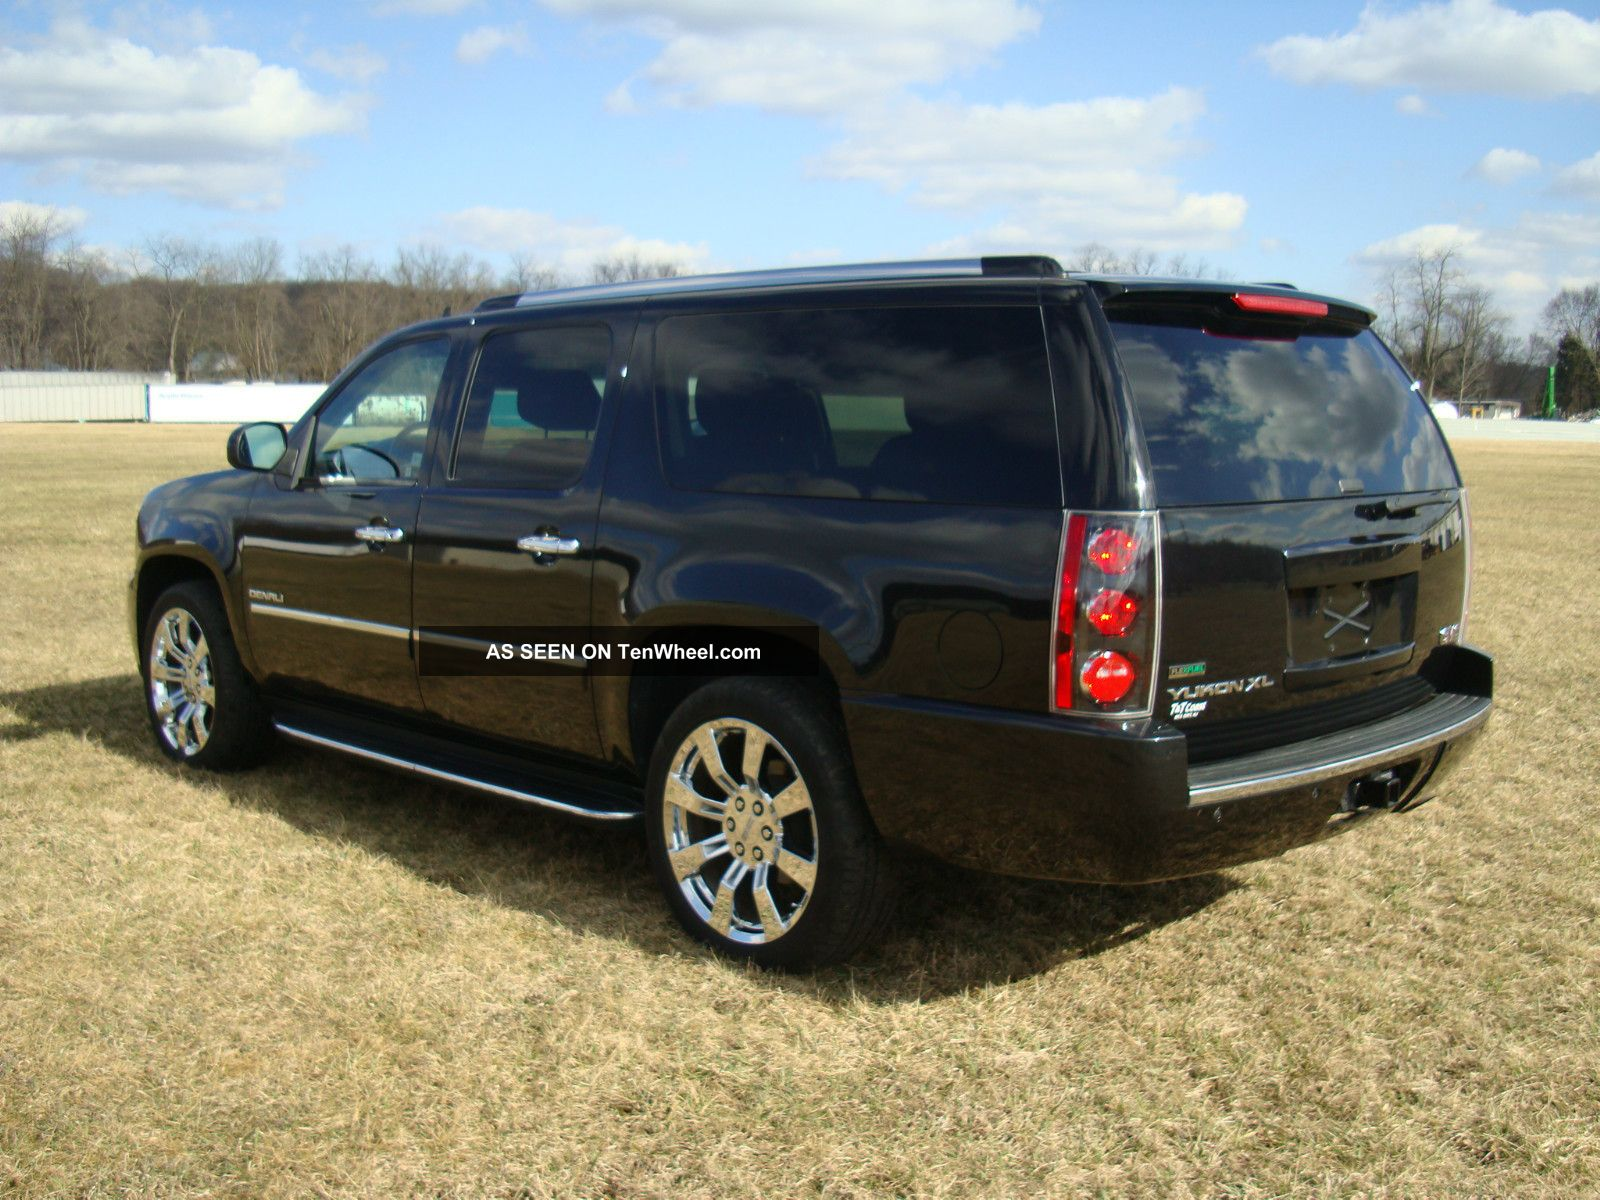 2011 Gmc Yukon Denali Xl 22k Mi Remote Start Dvd Backup ...